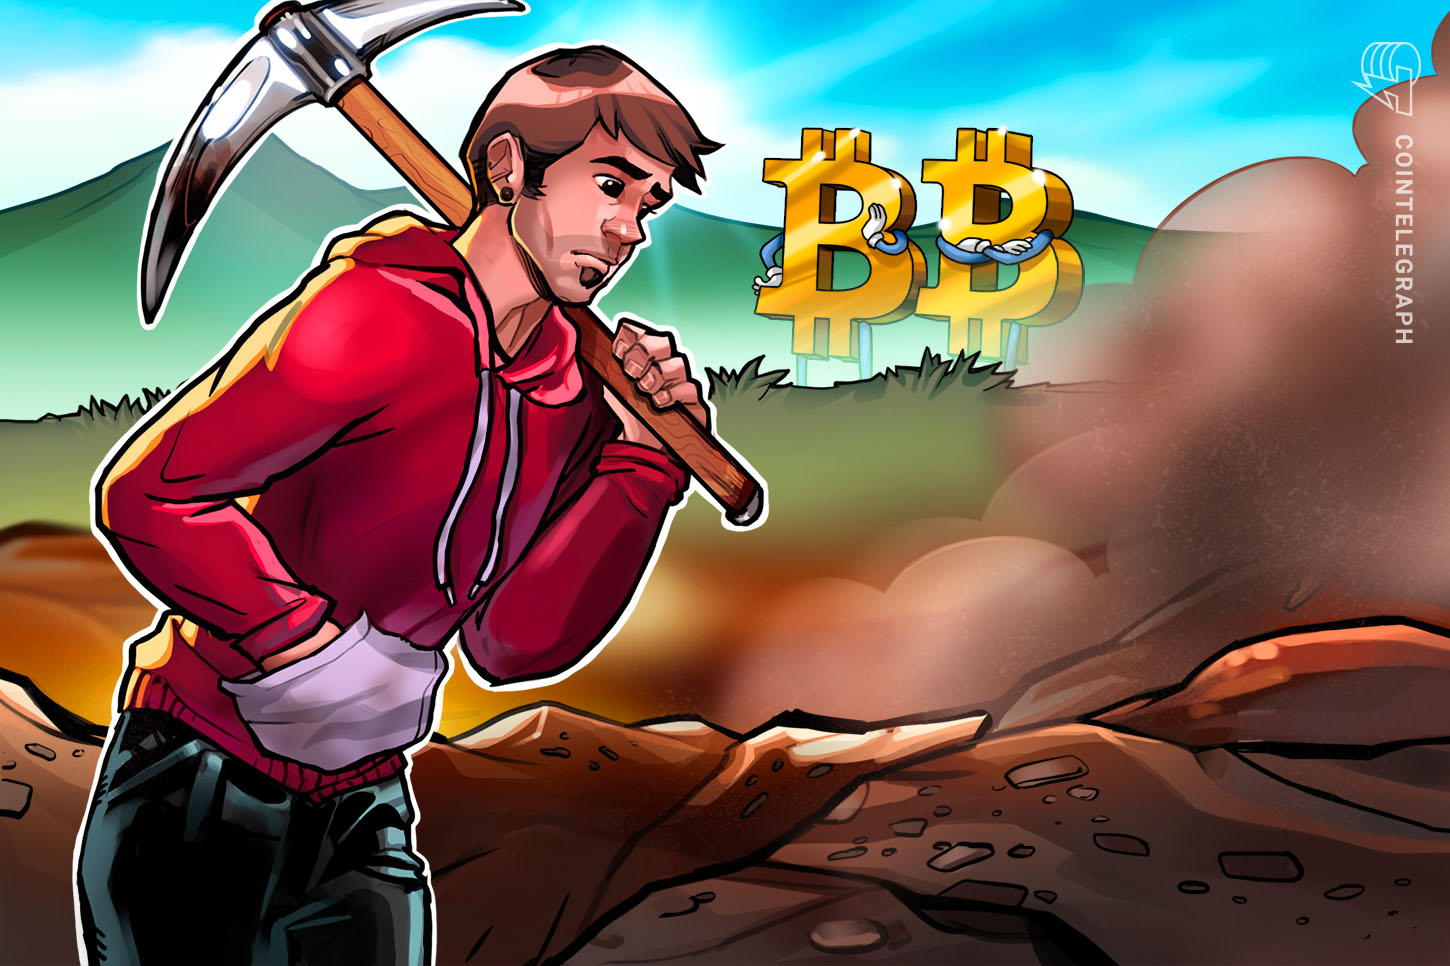 Four North American Bitcoin miners that could benefit from the East-West shift